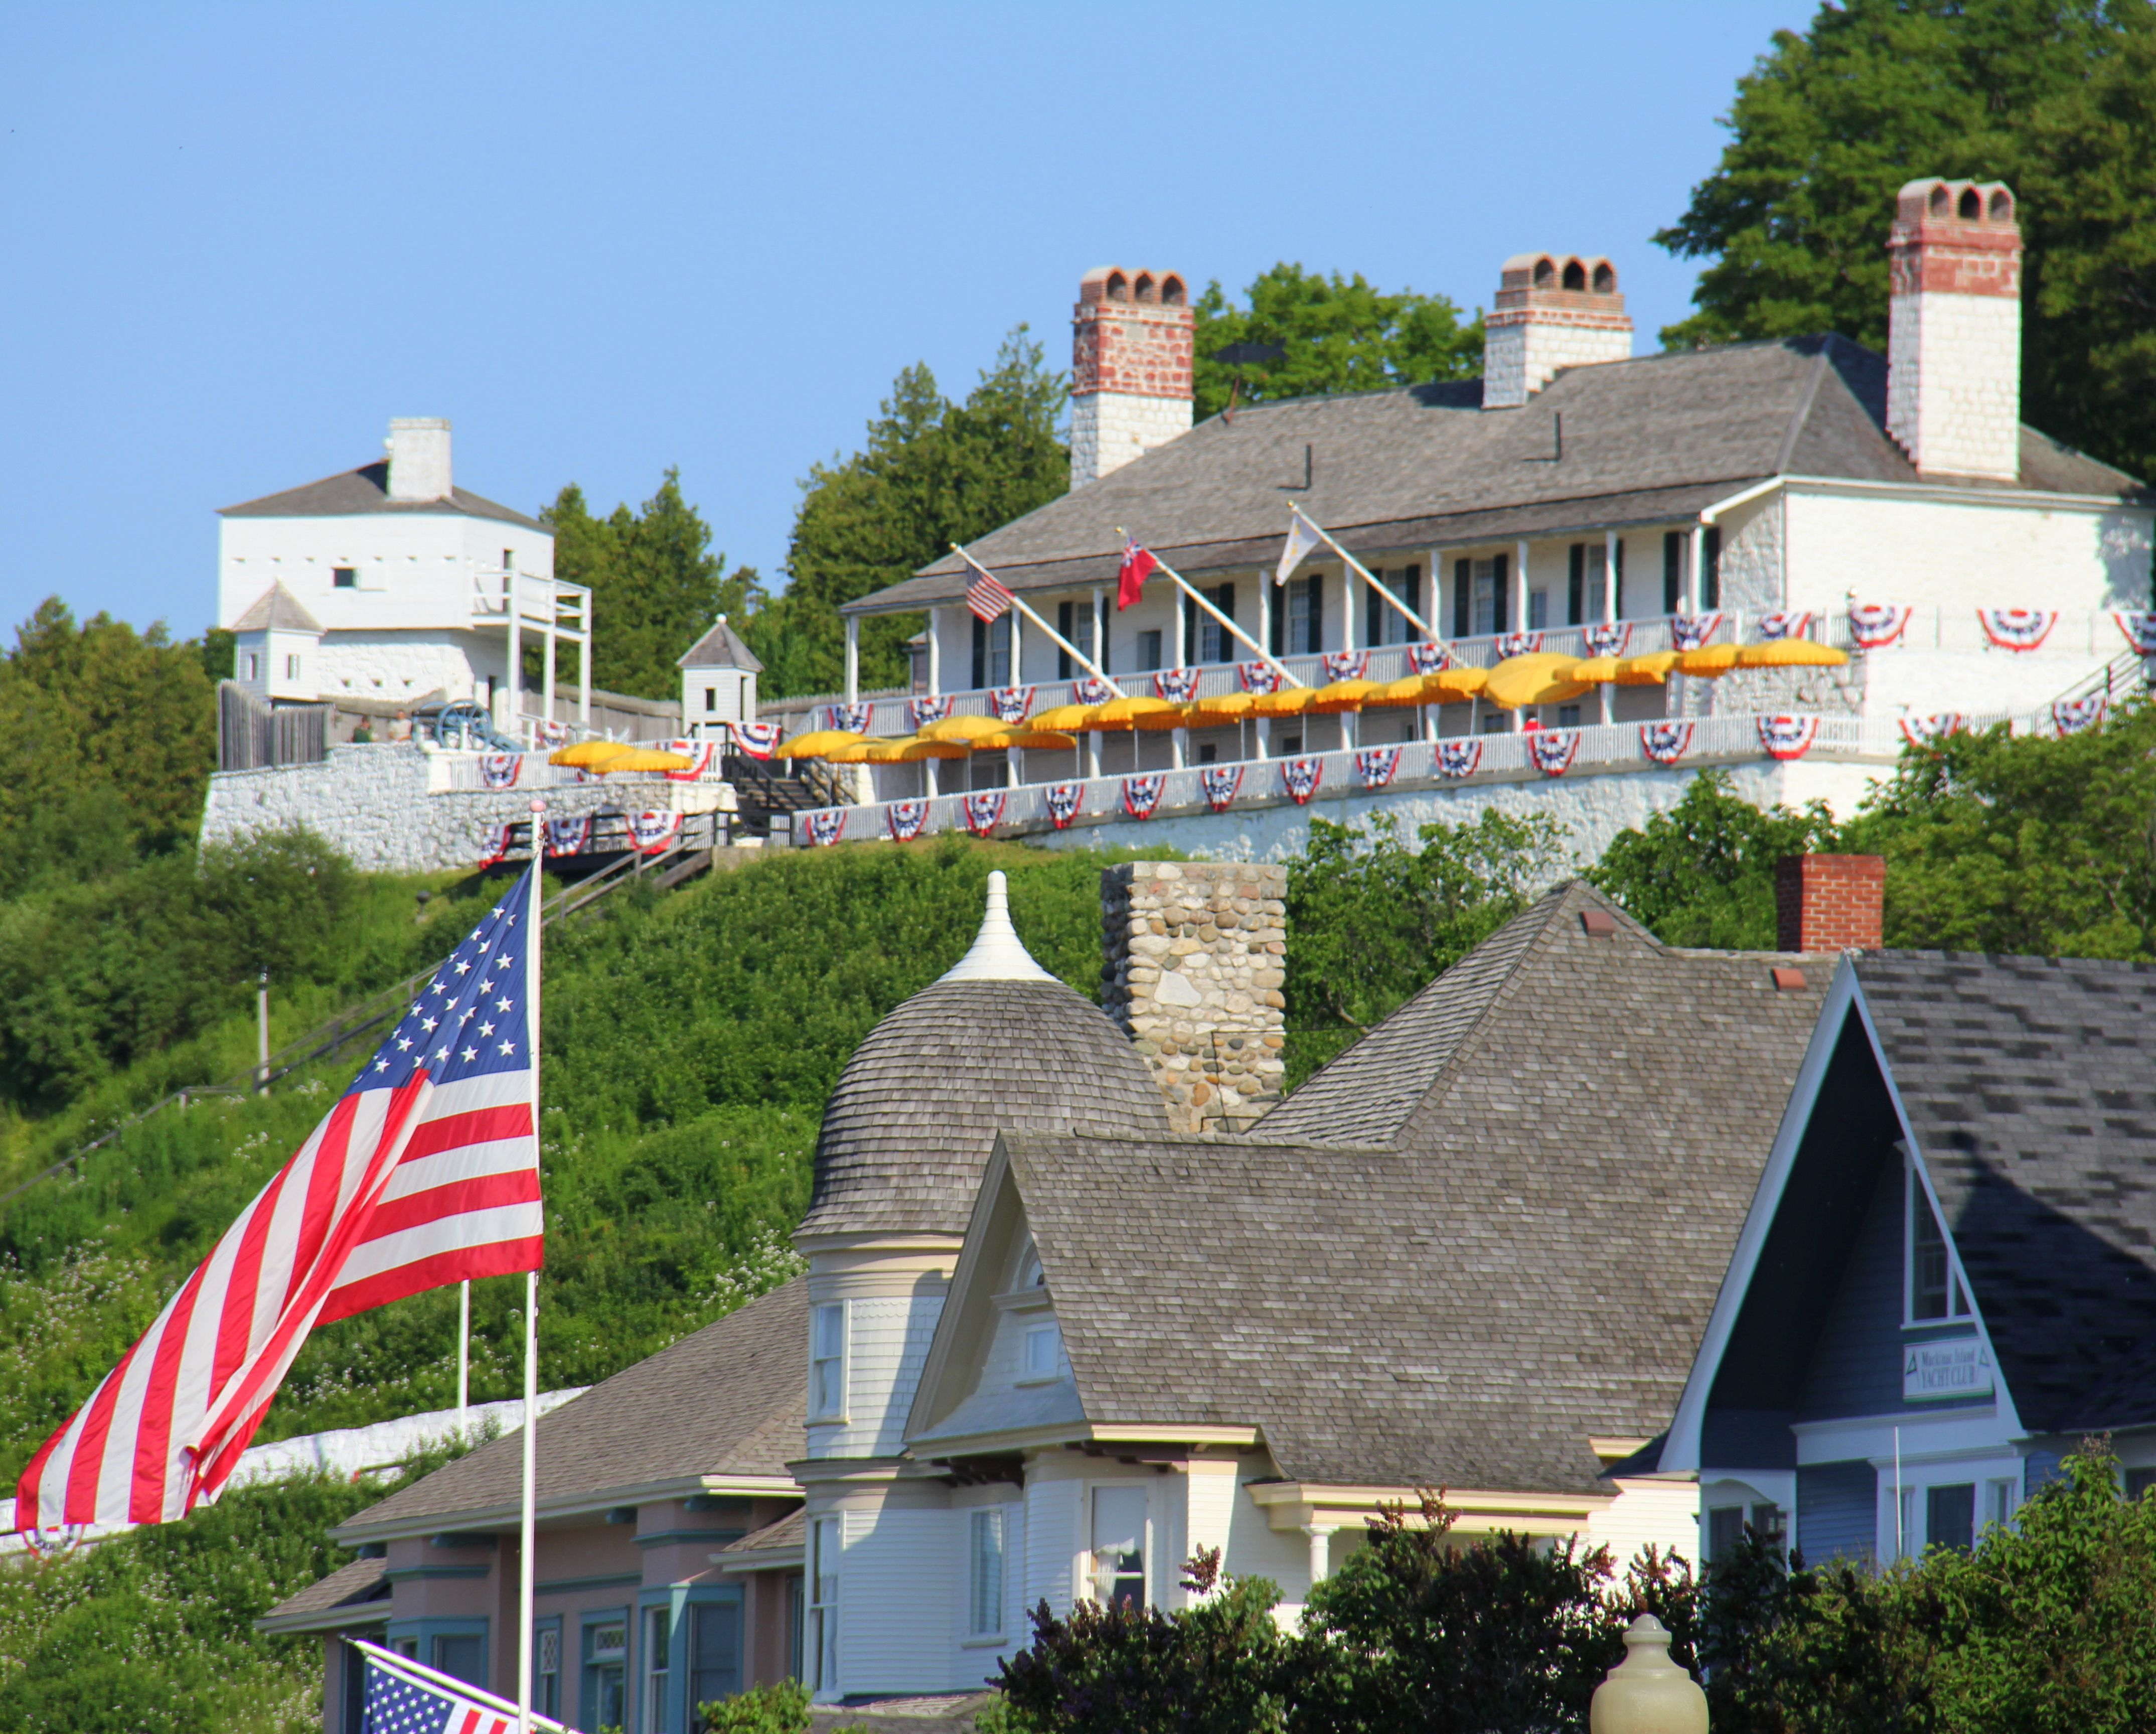 Visit The Fort On July 4th Mackinac Island Mackinac Island Mackinac Island